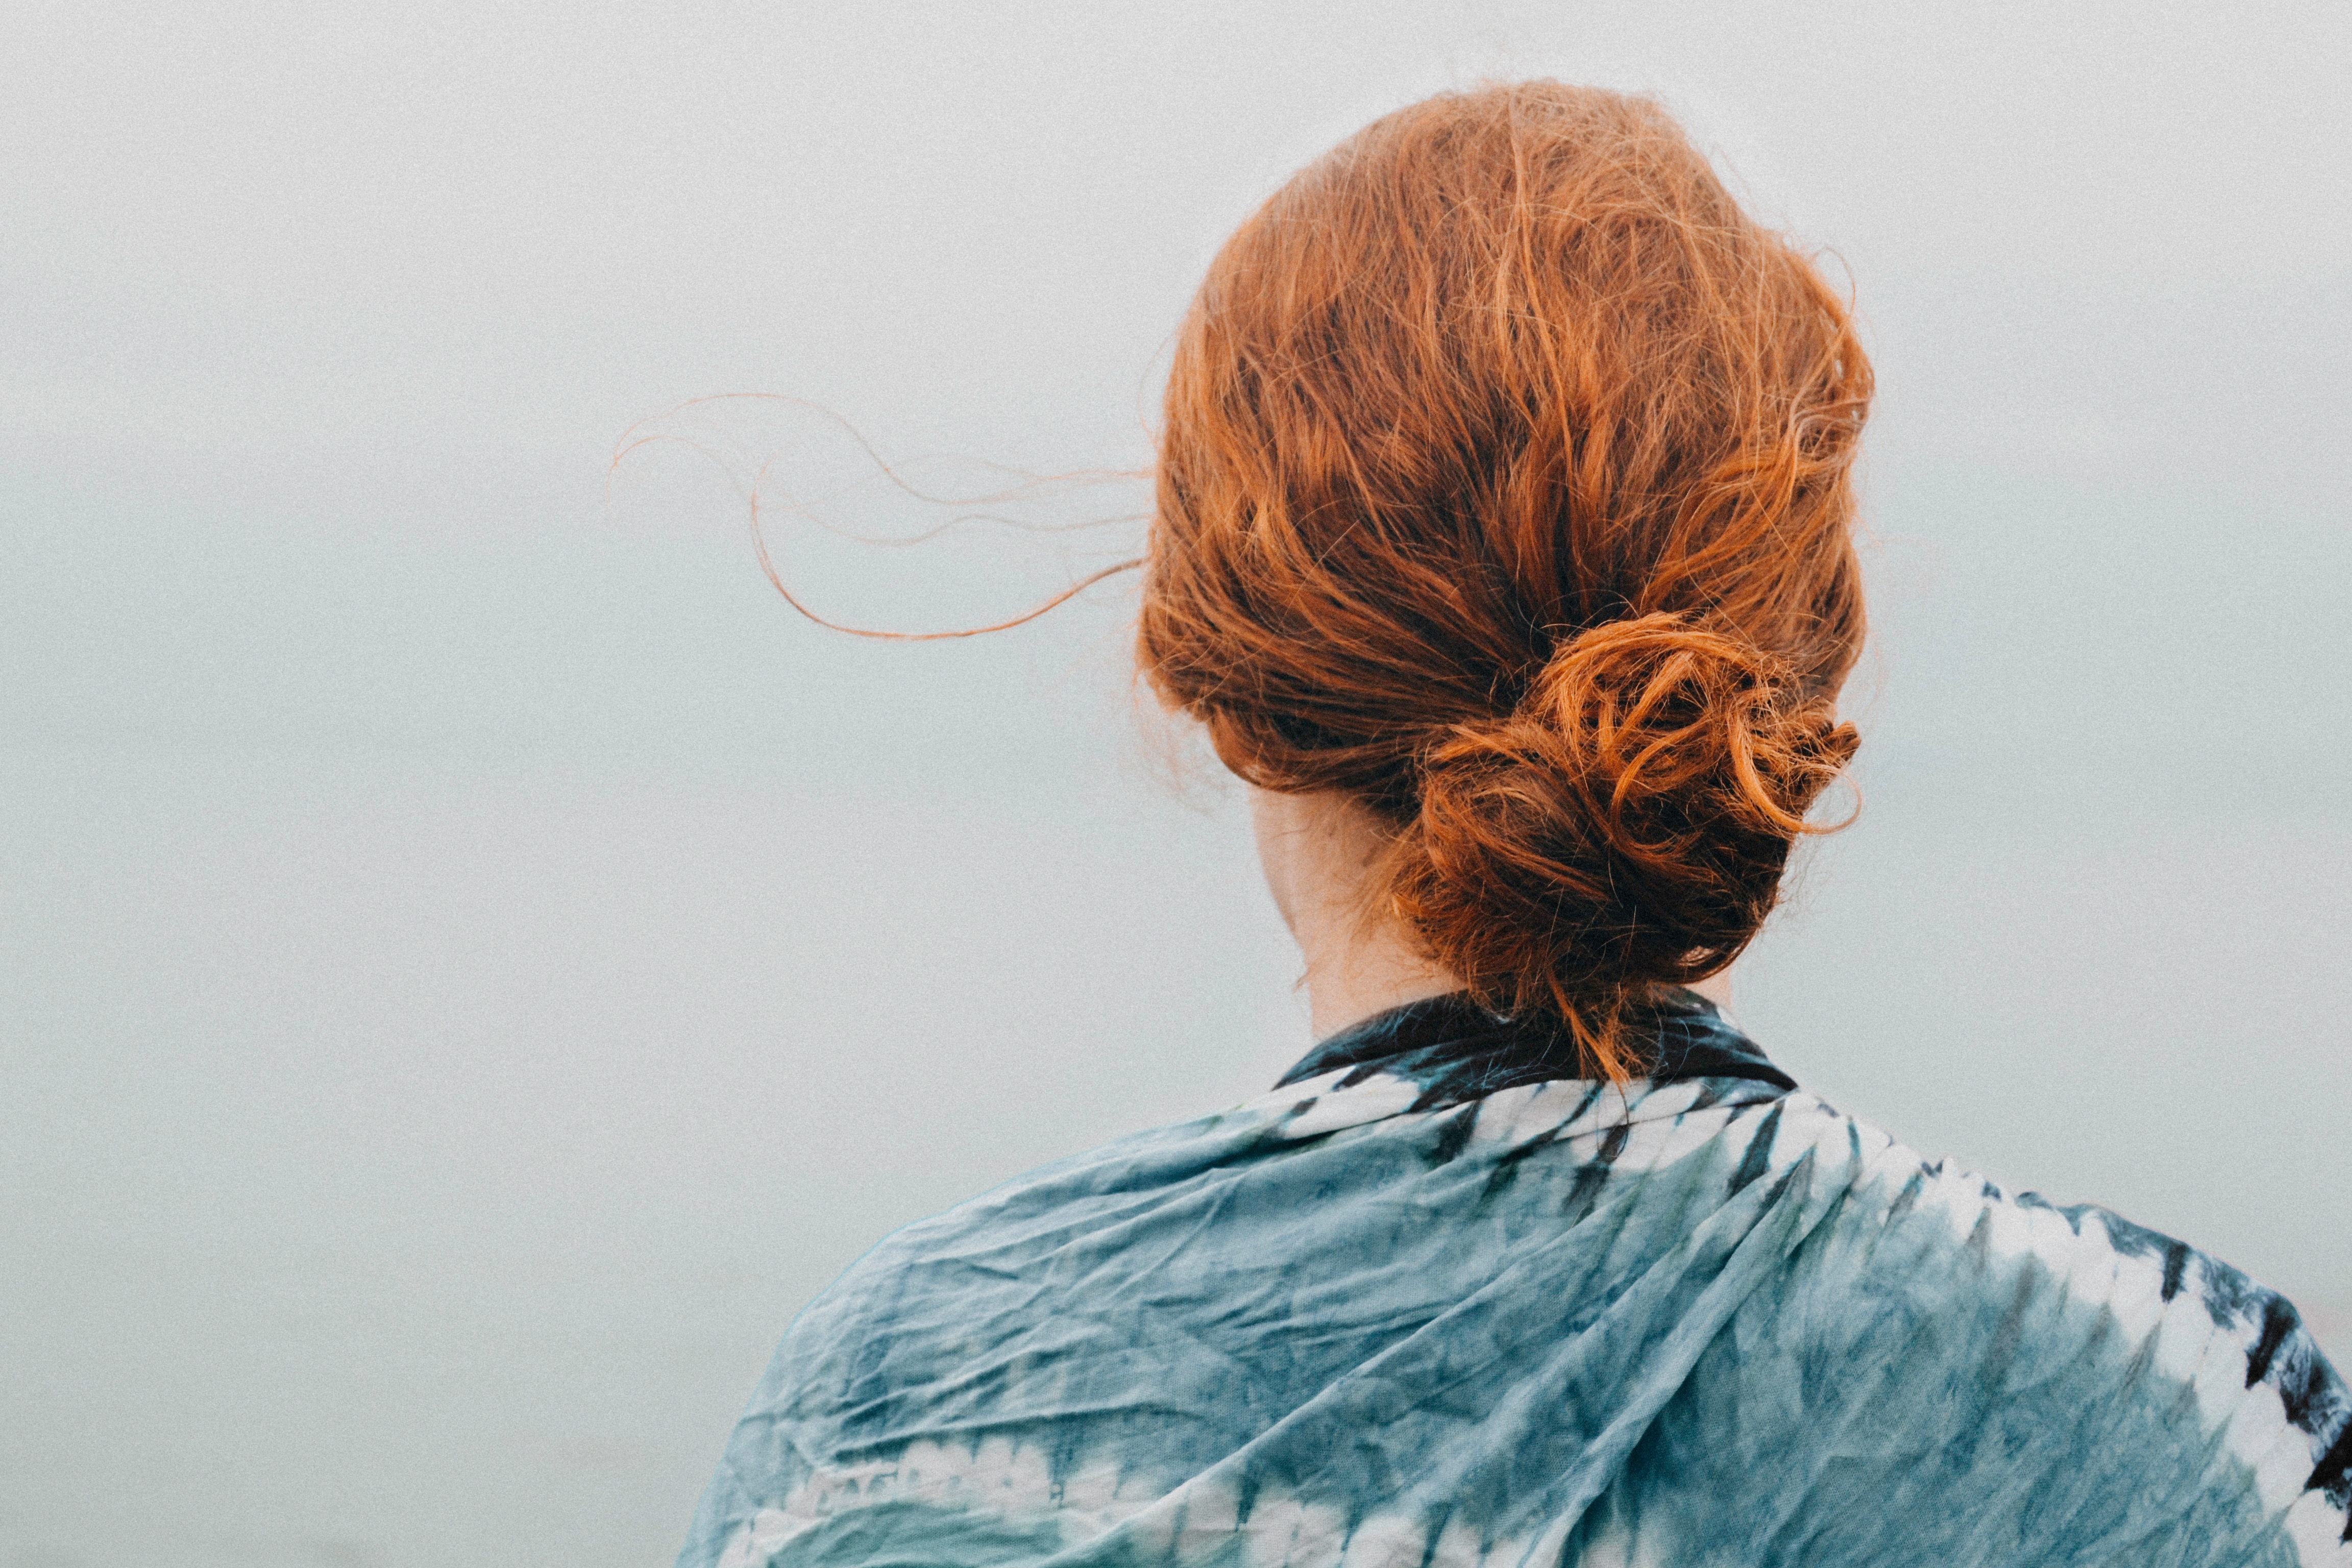 A woman with red hair looks out over a misty vista